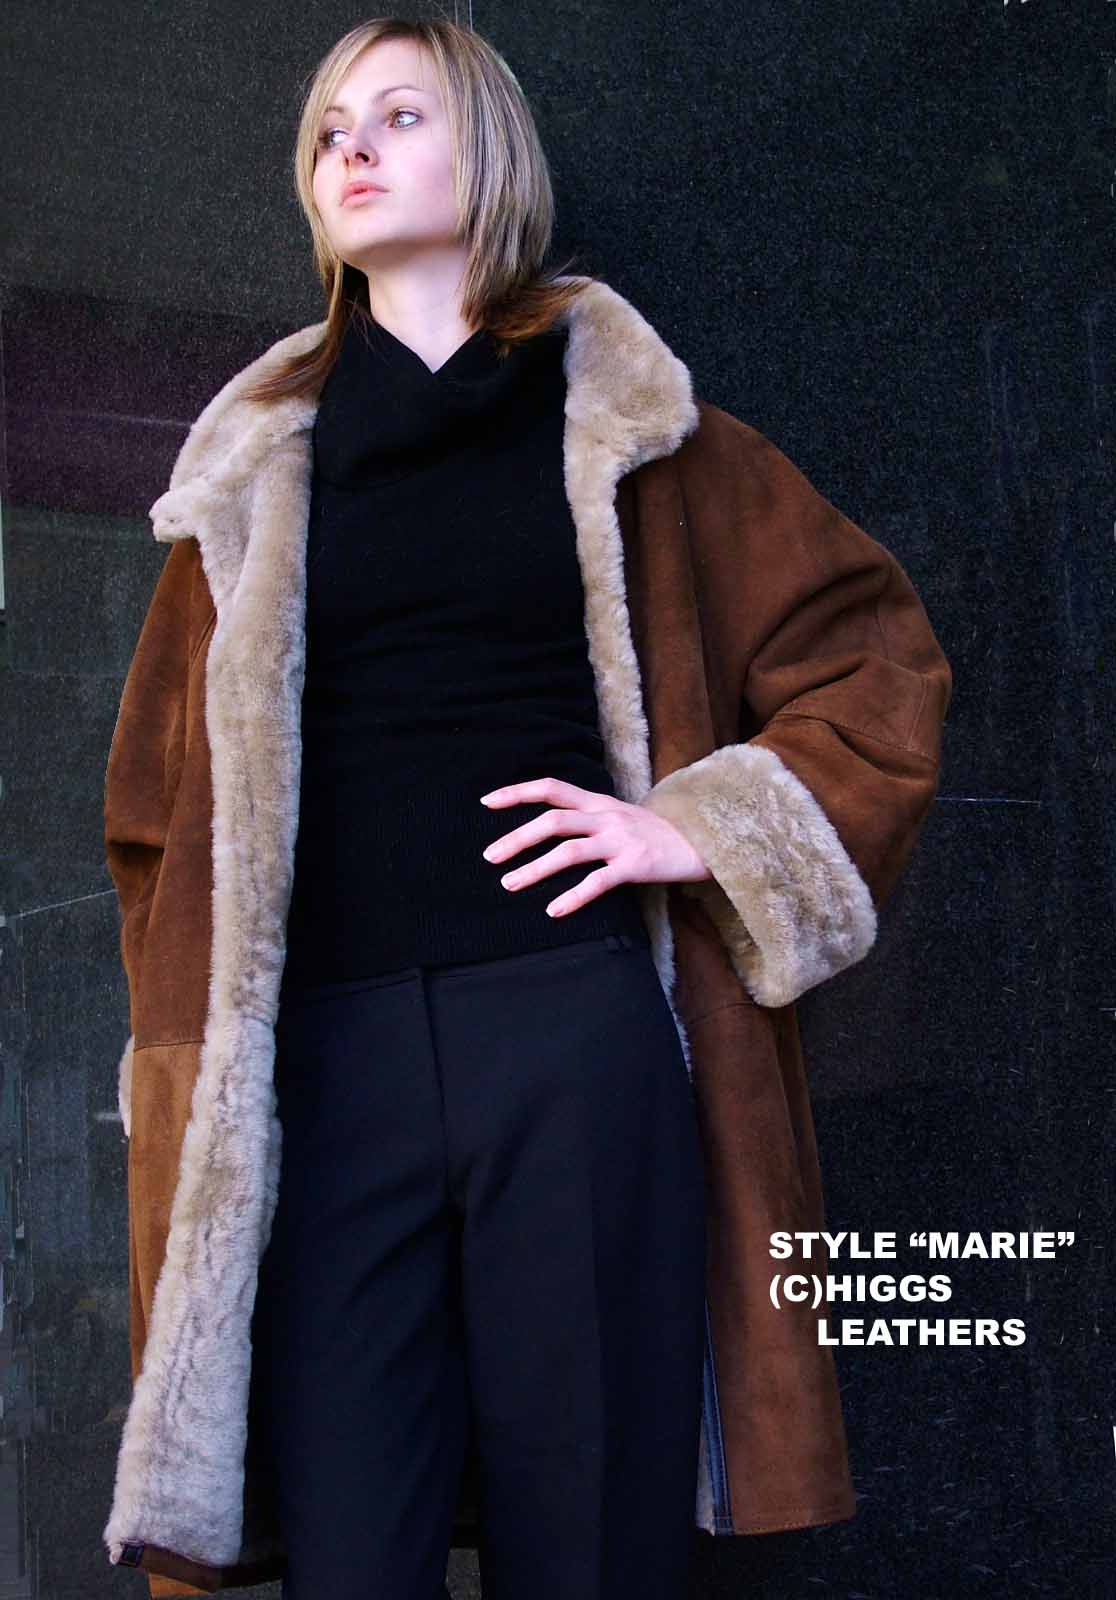 Higgs Leathers Marie (3/4 length ladies swingback Merino Lambskin coats) Sizes 36' to 50' bust!